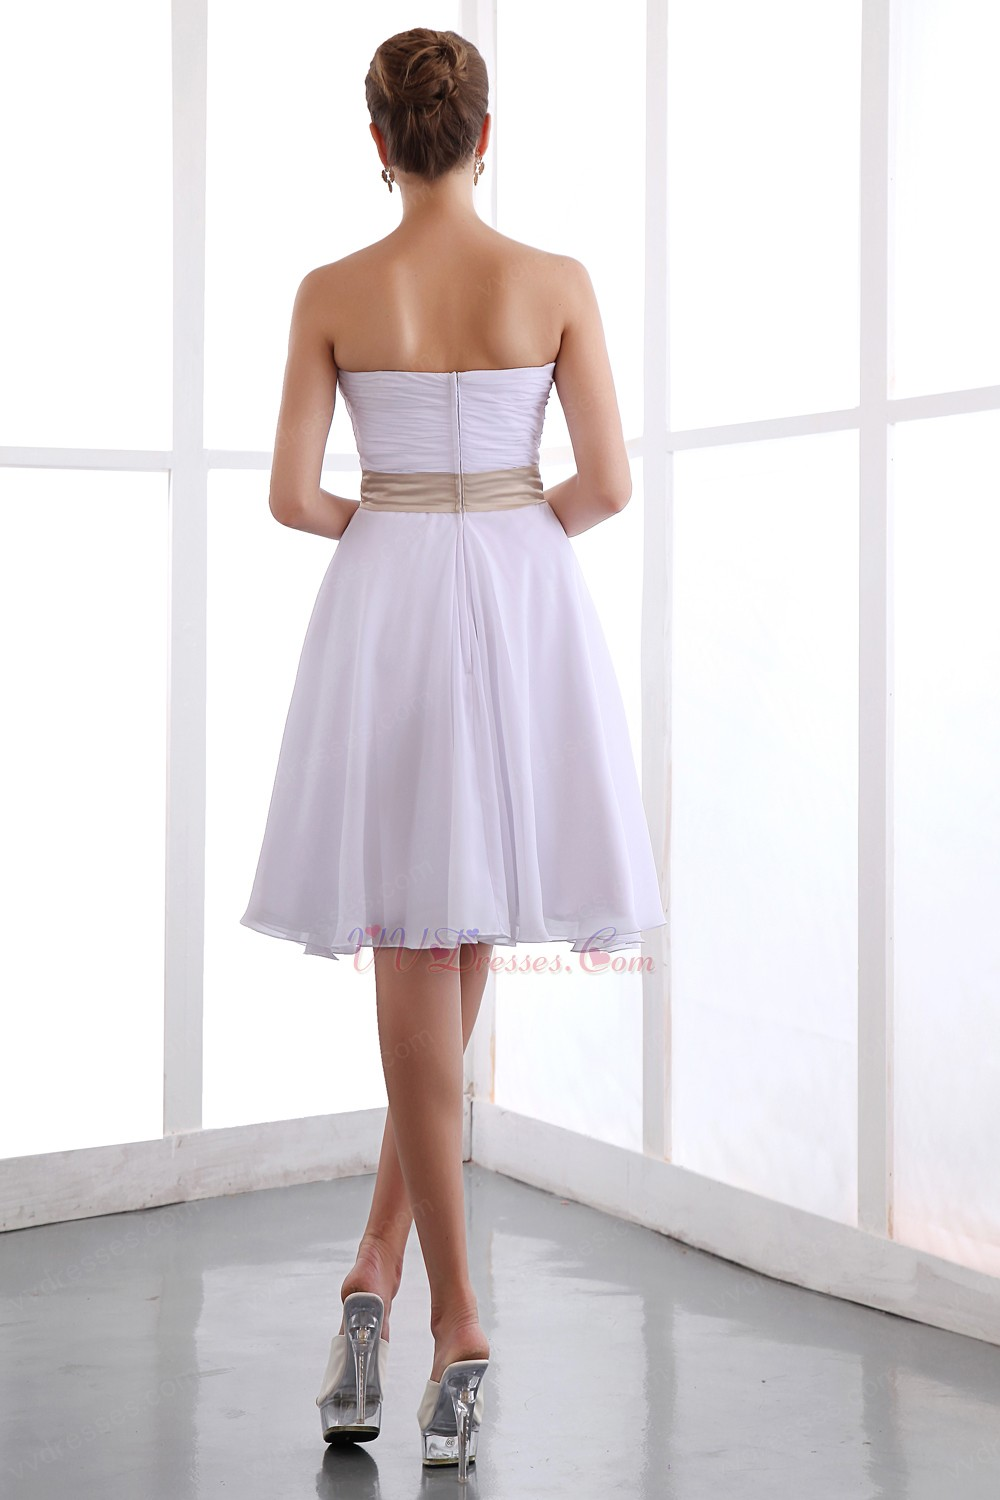 Bridesmaids dresses under 100 dollars wedding dresses asian for Cheap wedding dresses under 50 dollars